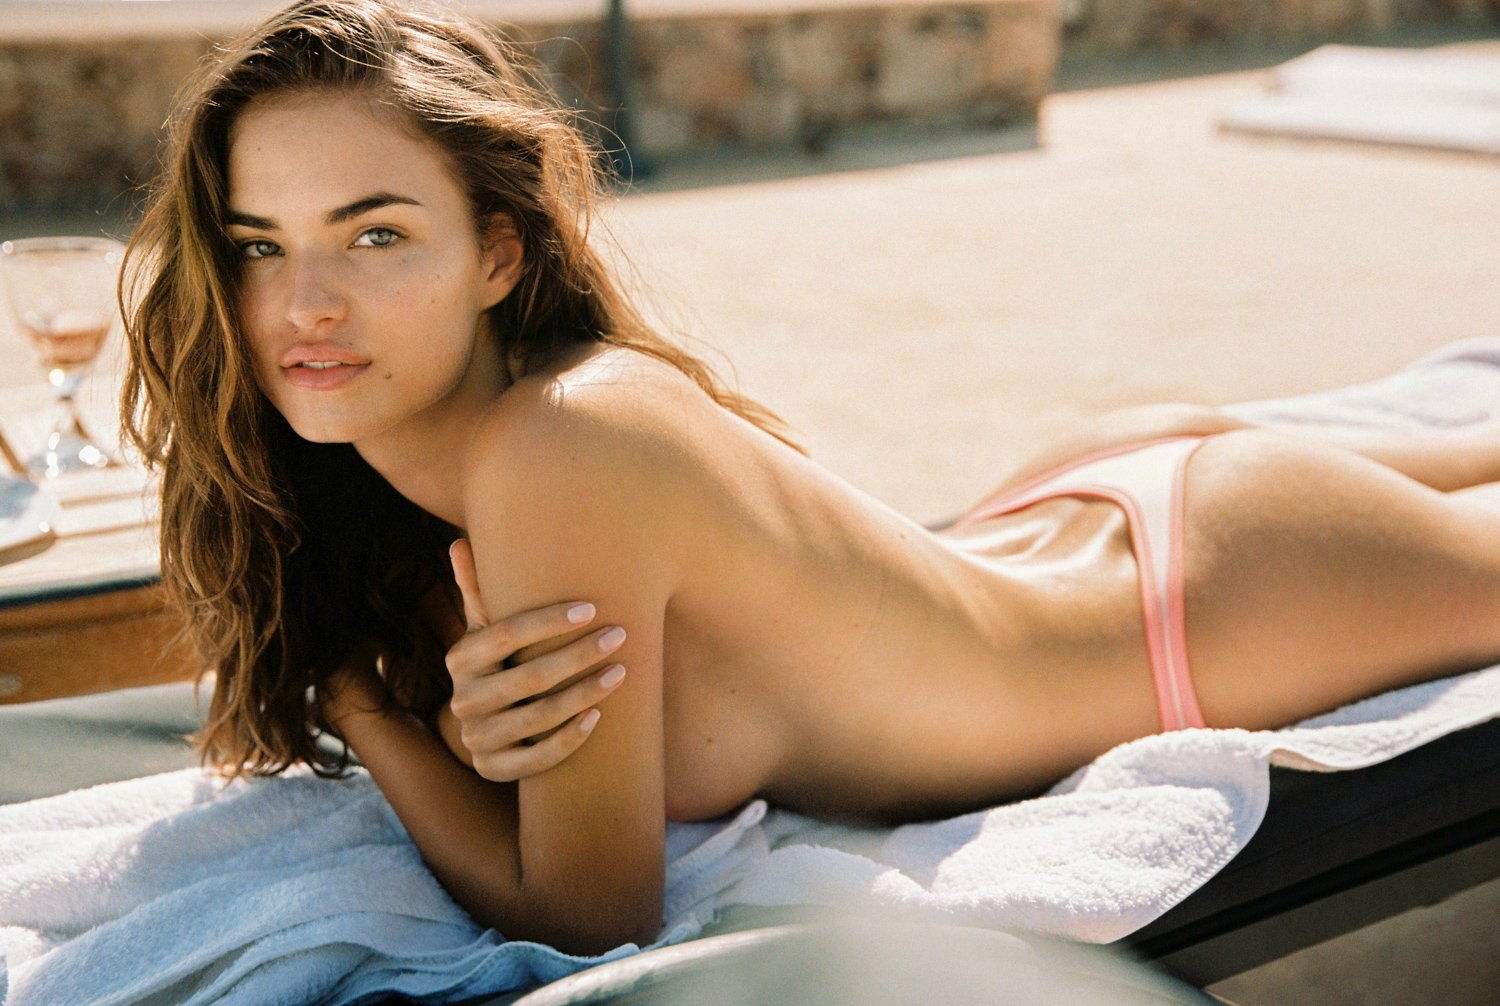 Robin Holzken Only Panty Wallpapers - Robin Holzken Only Panty Wallpapers